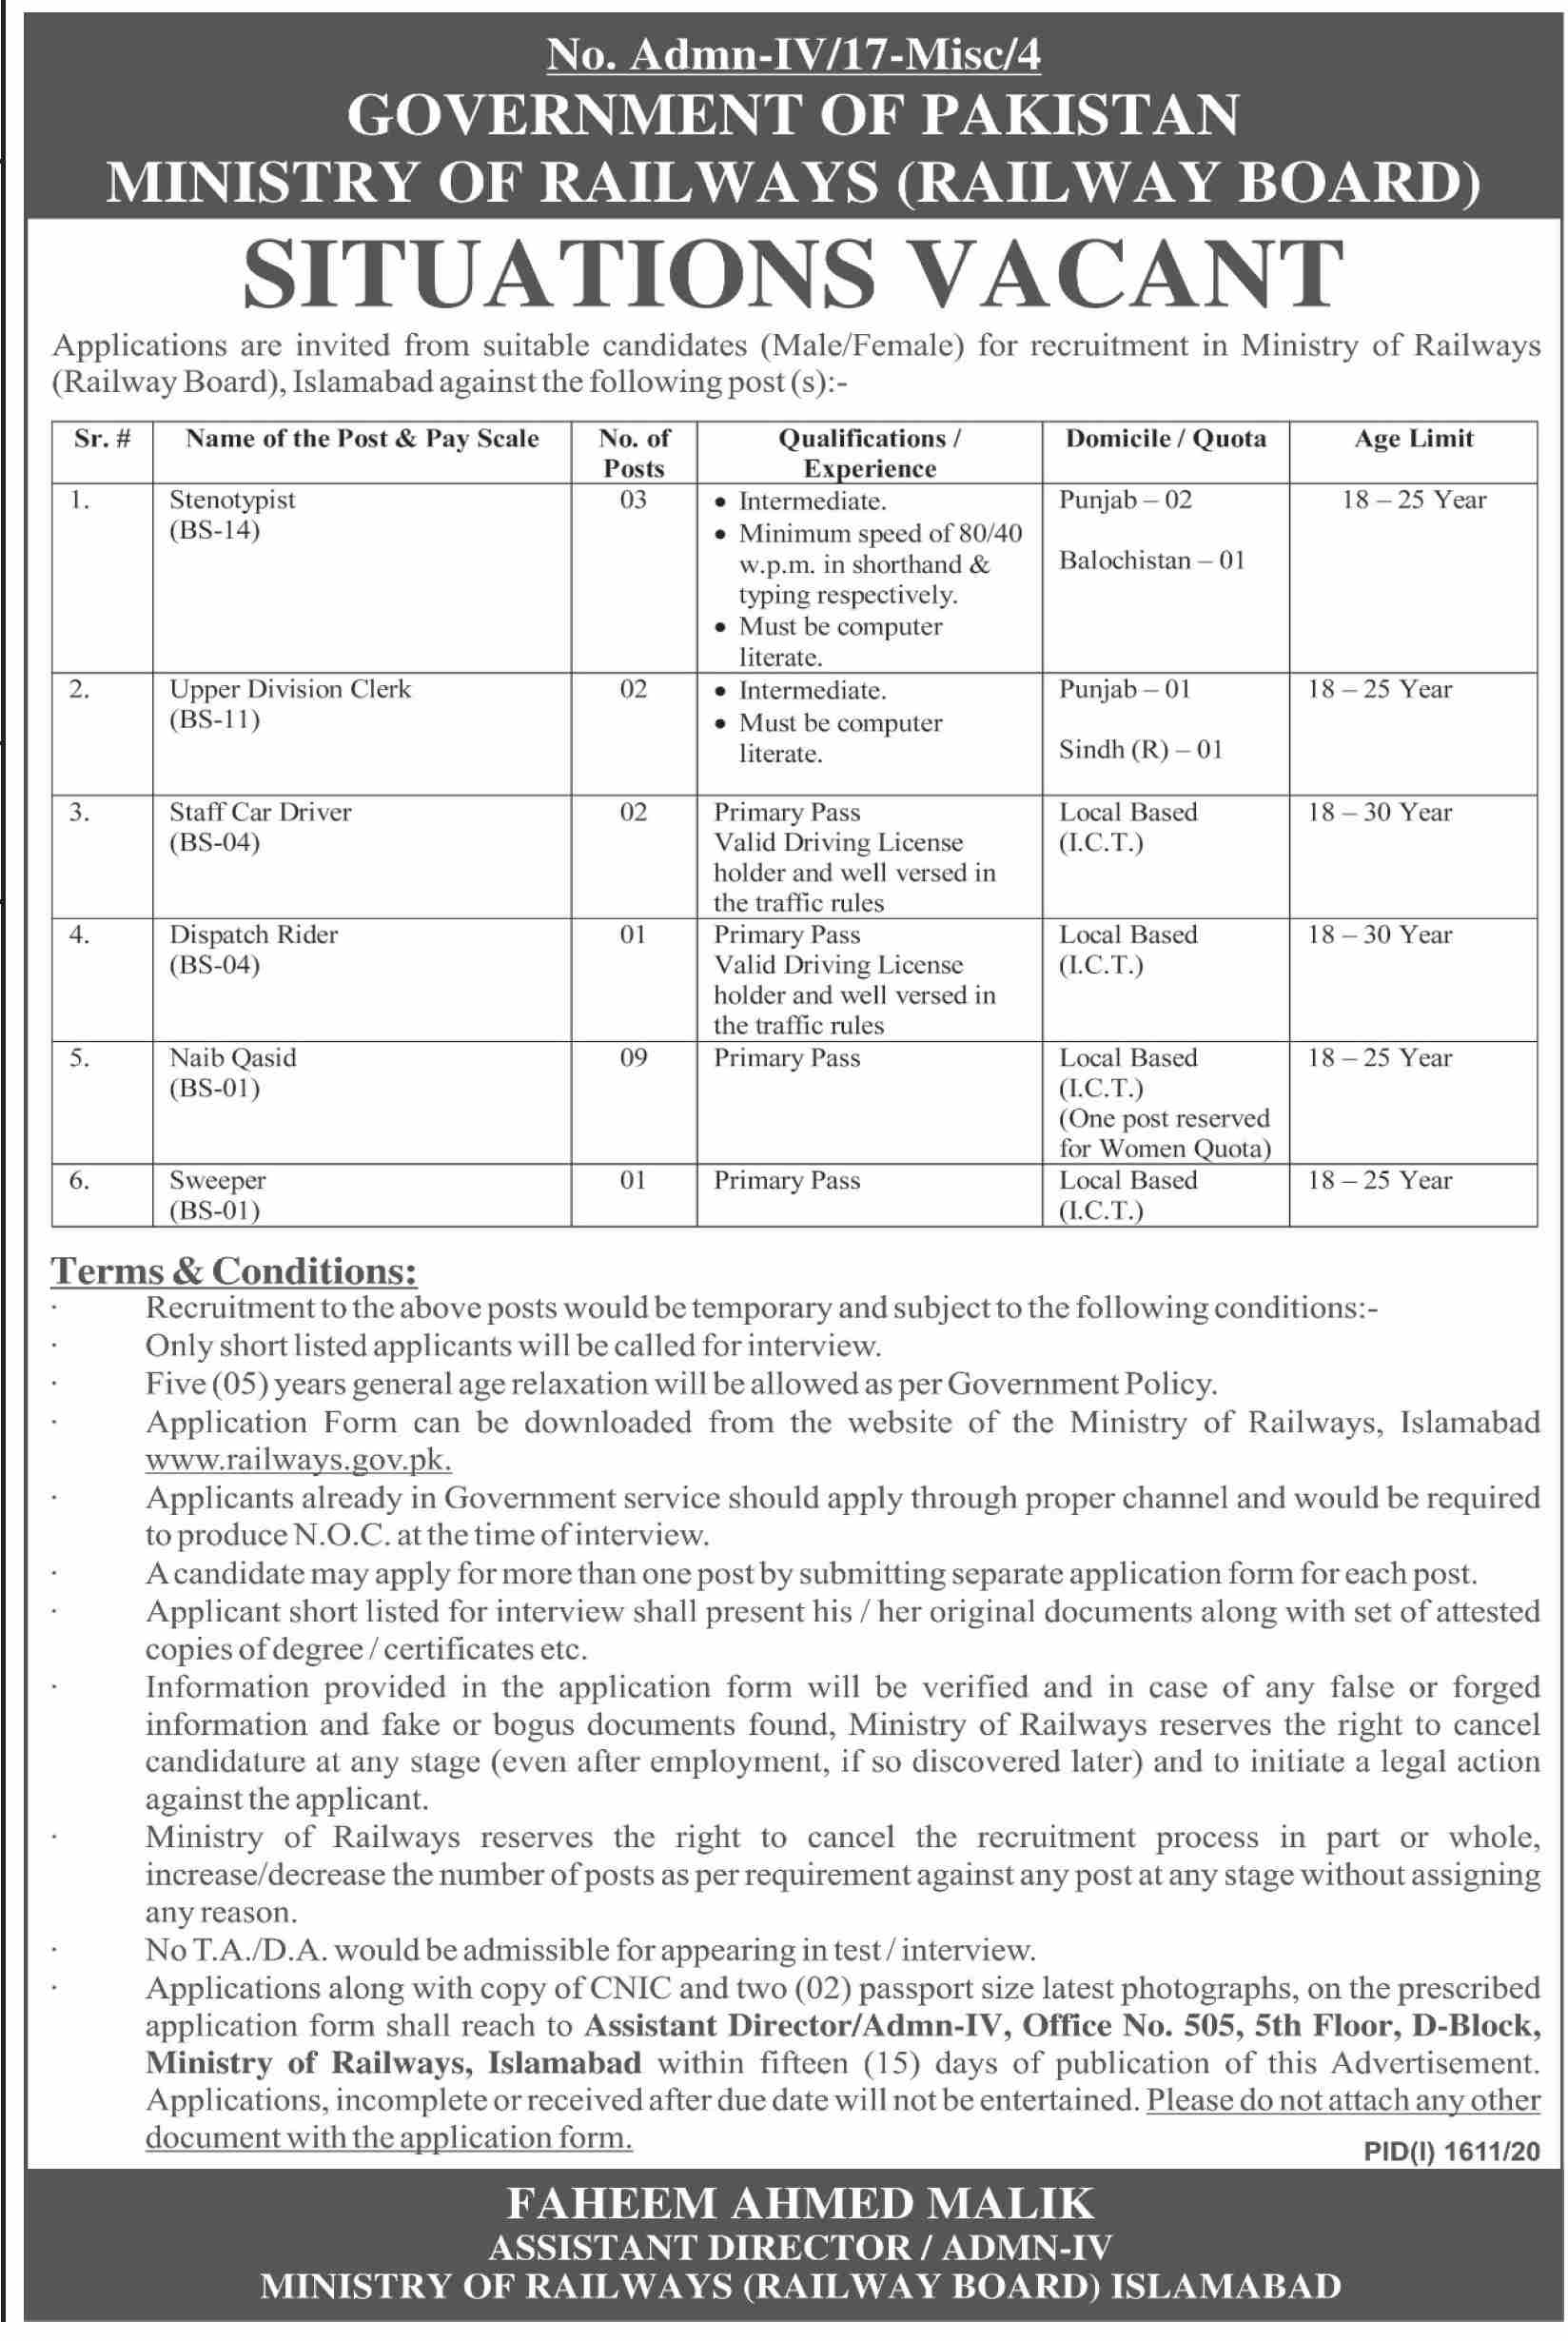 Government of Pakistan Ministry of Railways Jobs September 2020